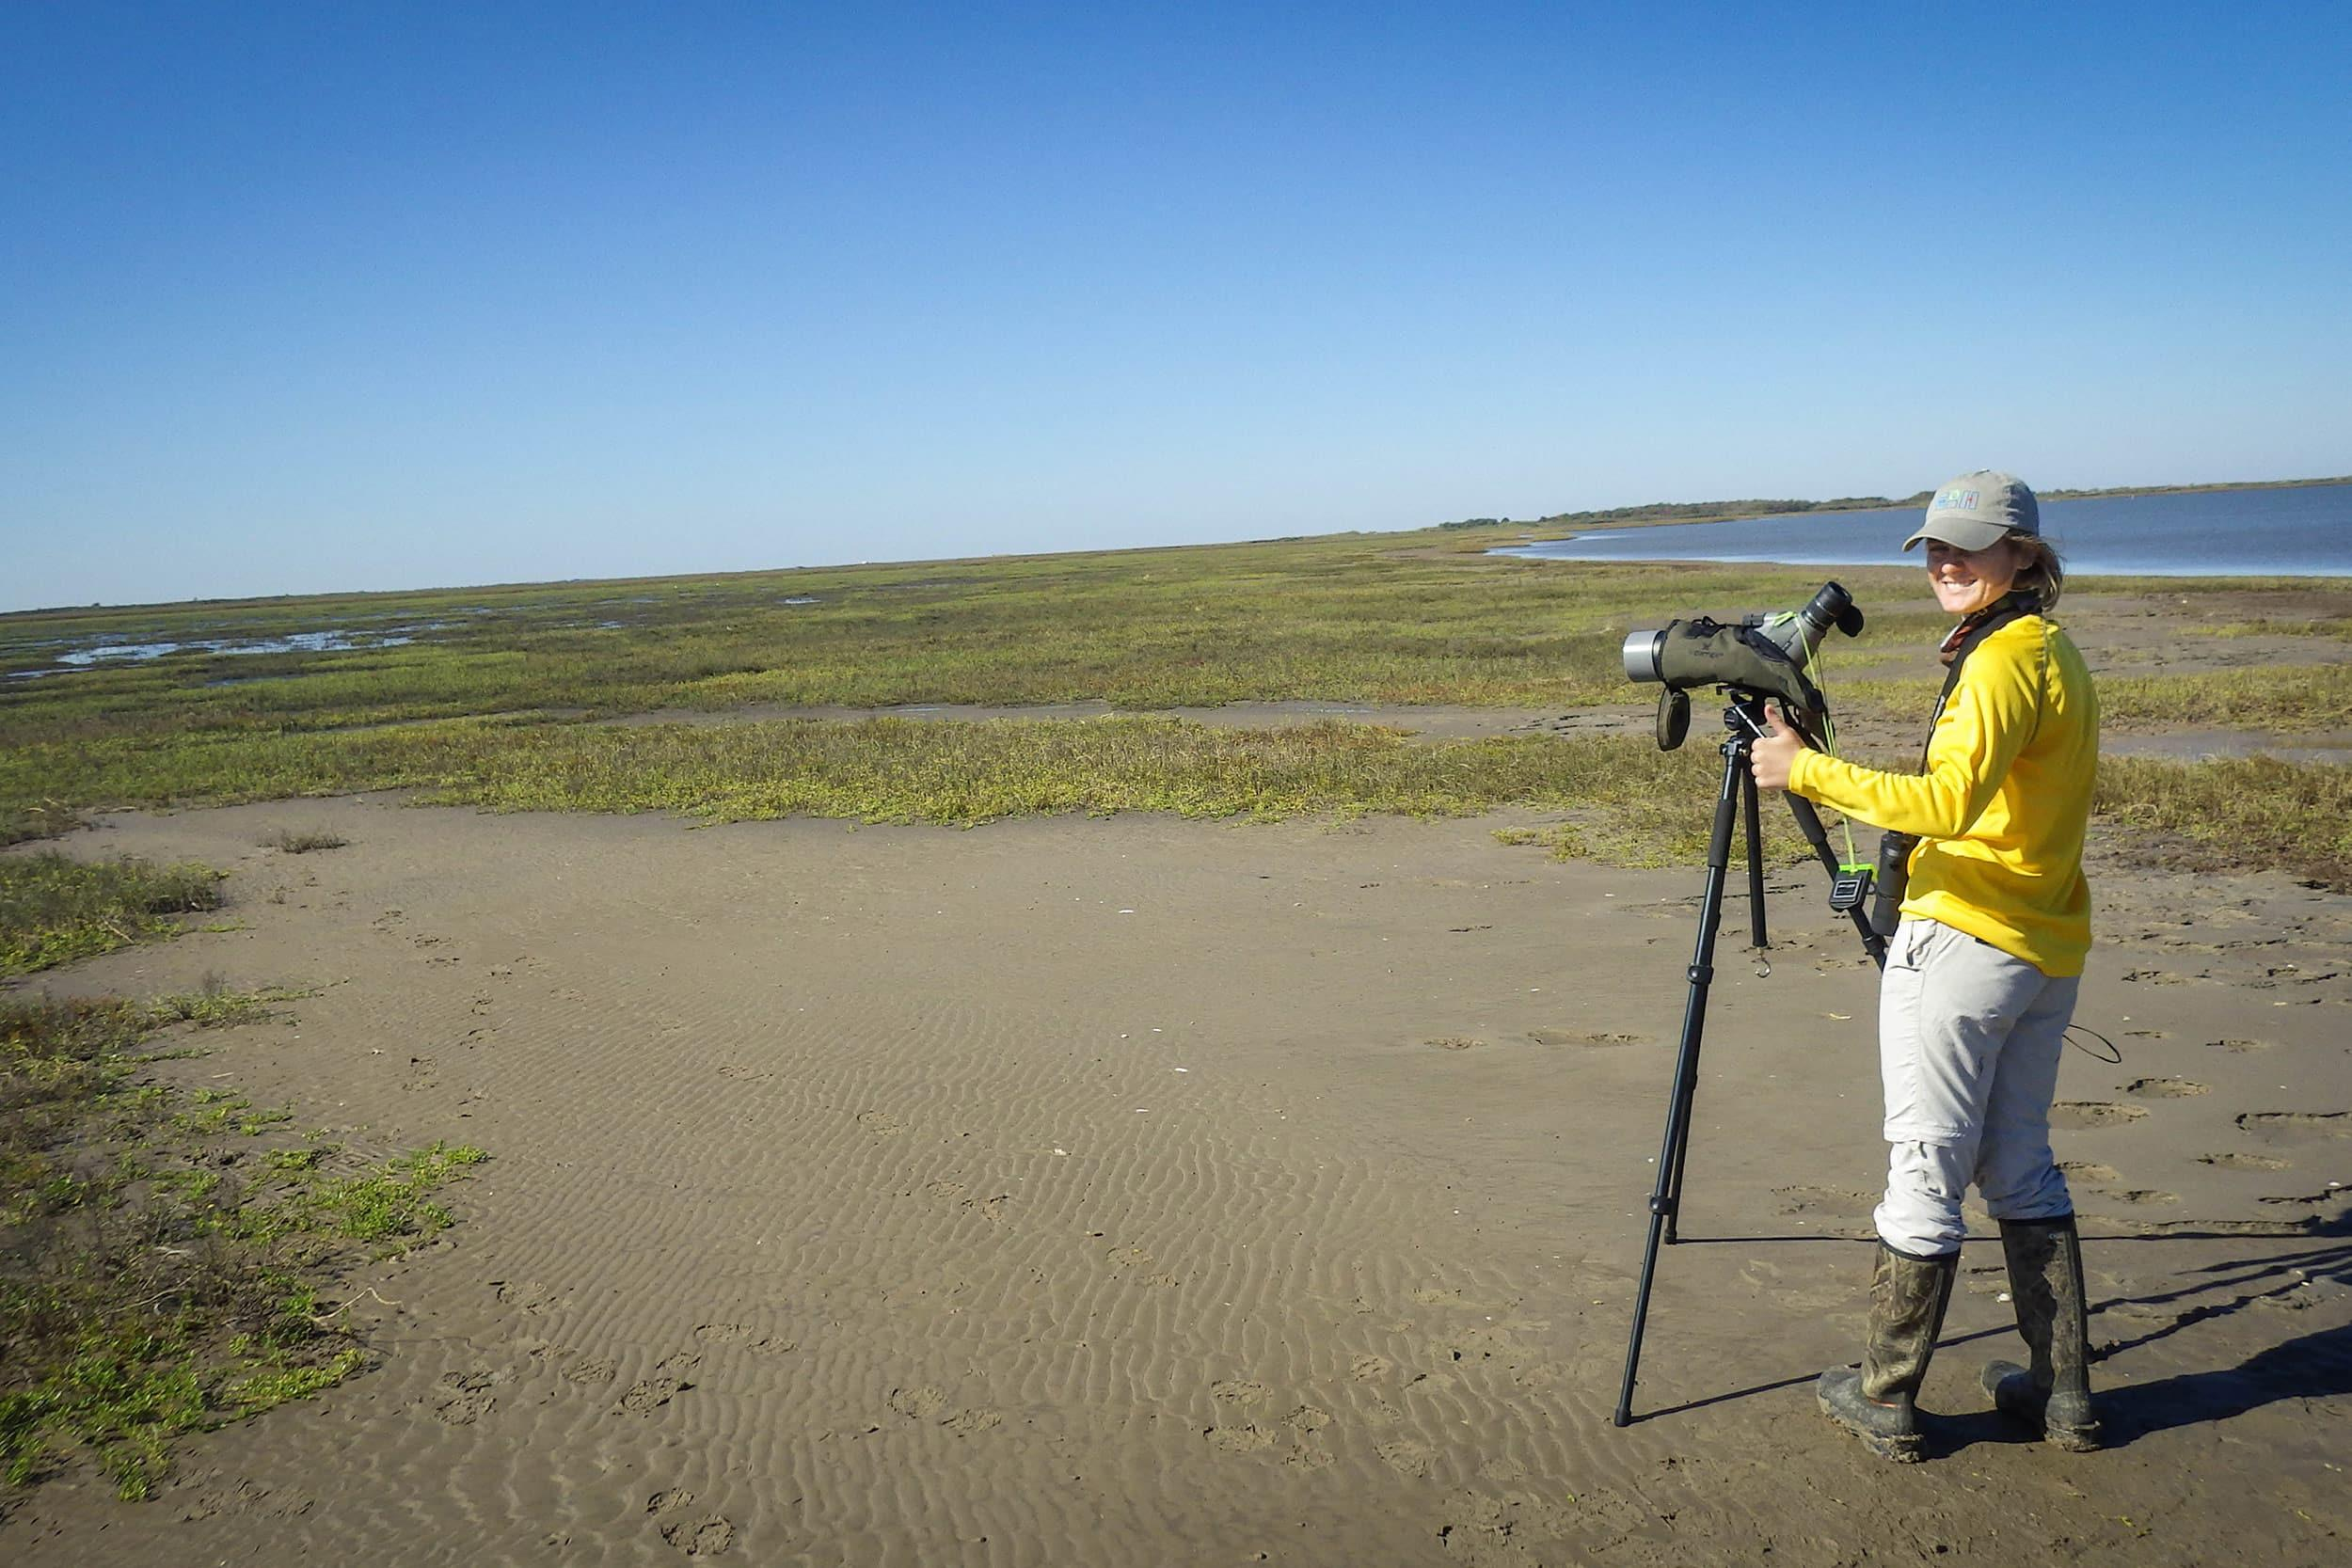 Anna Vallery, graduate assistant, conducts a bird survey as part of her research project